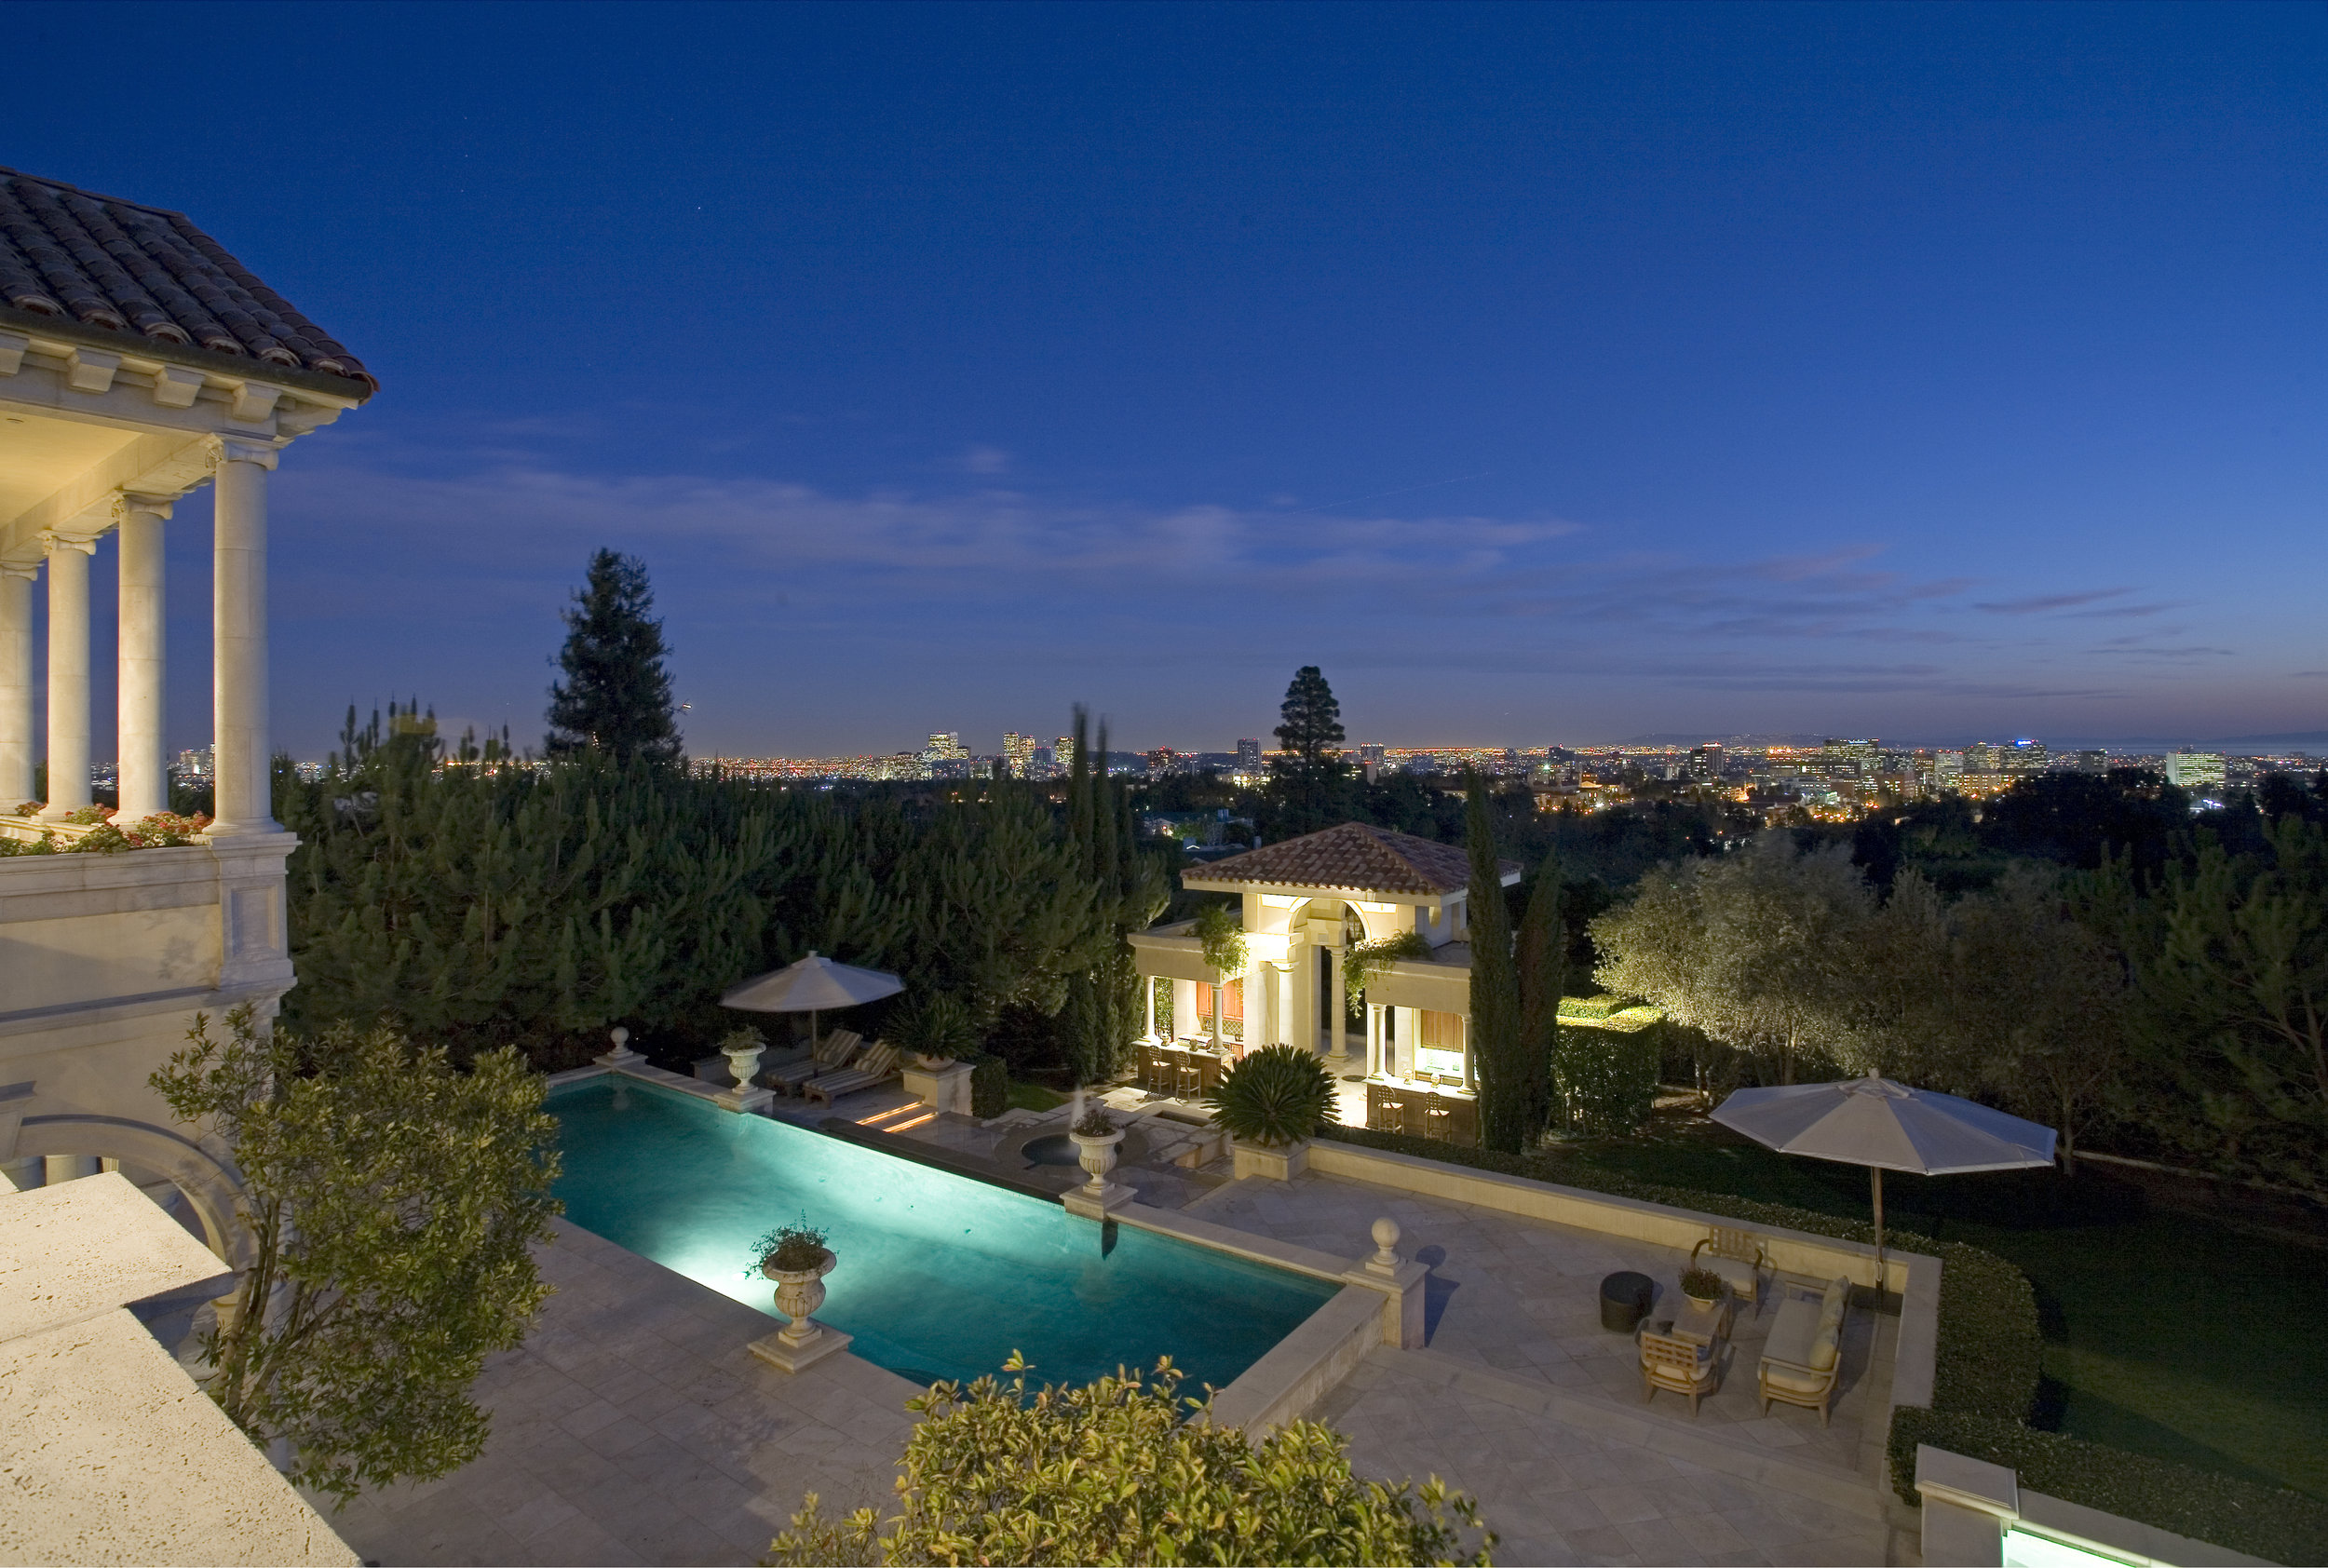 Twilight View from Upper Patio #1.jpg